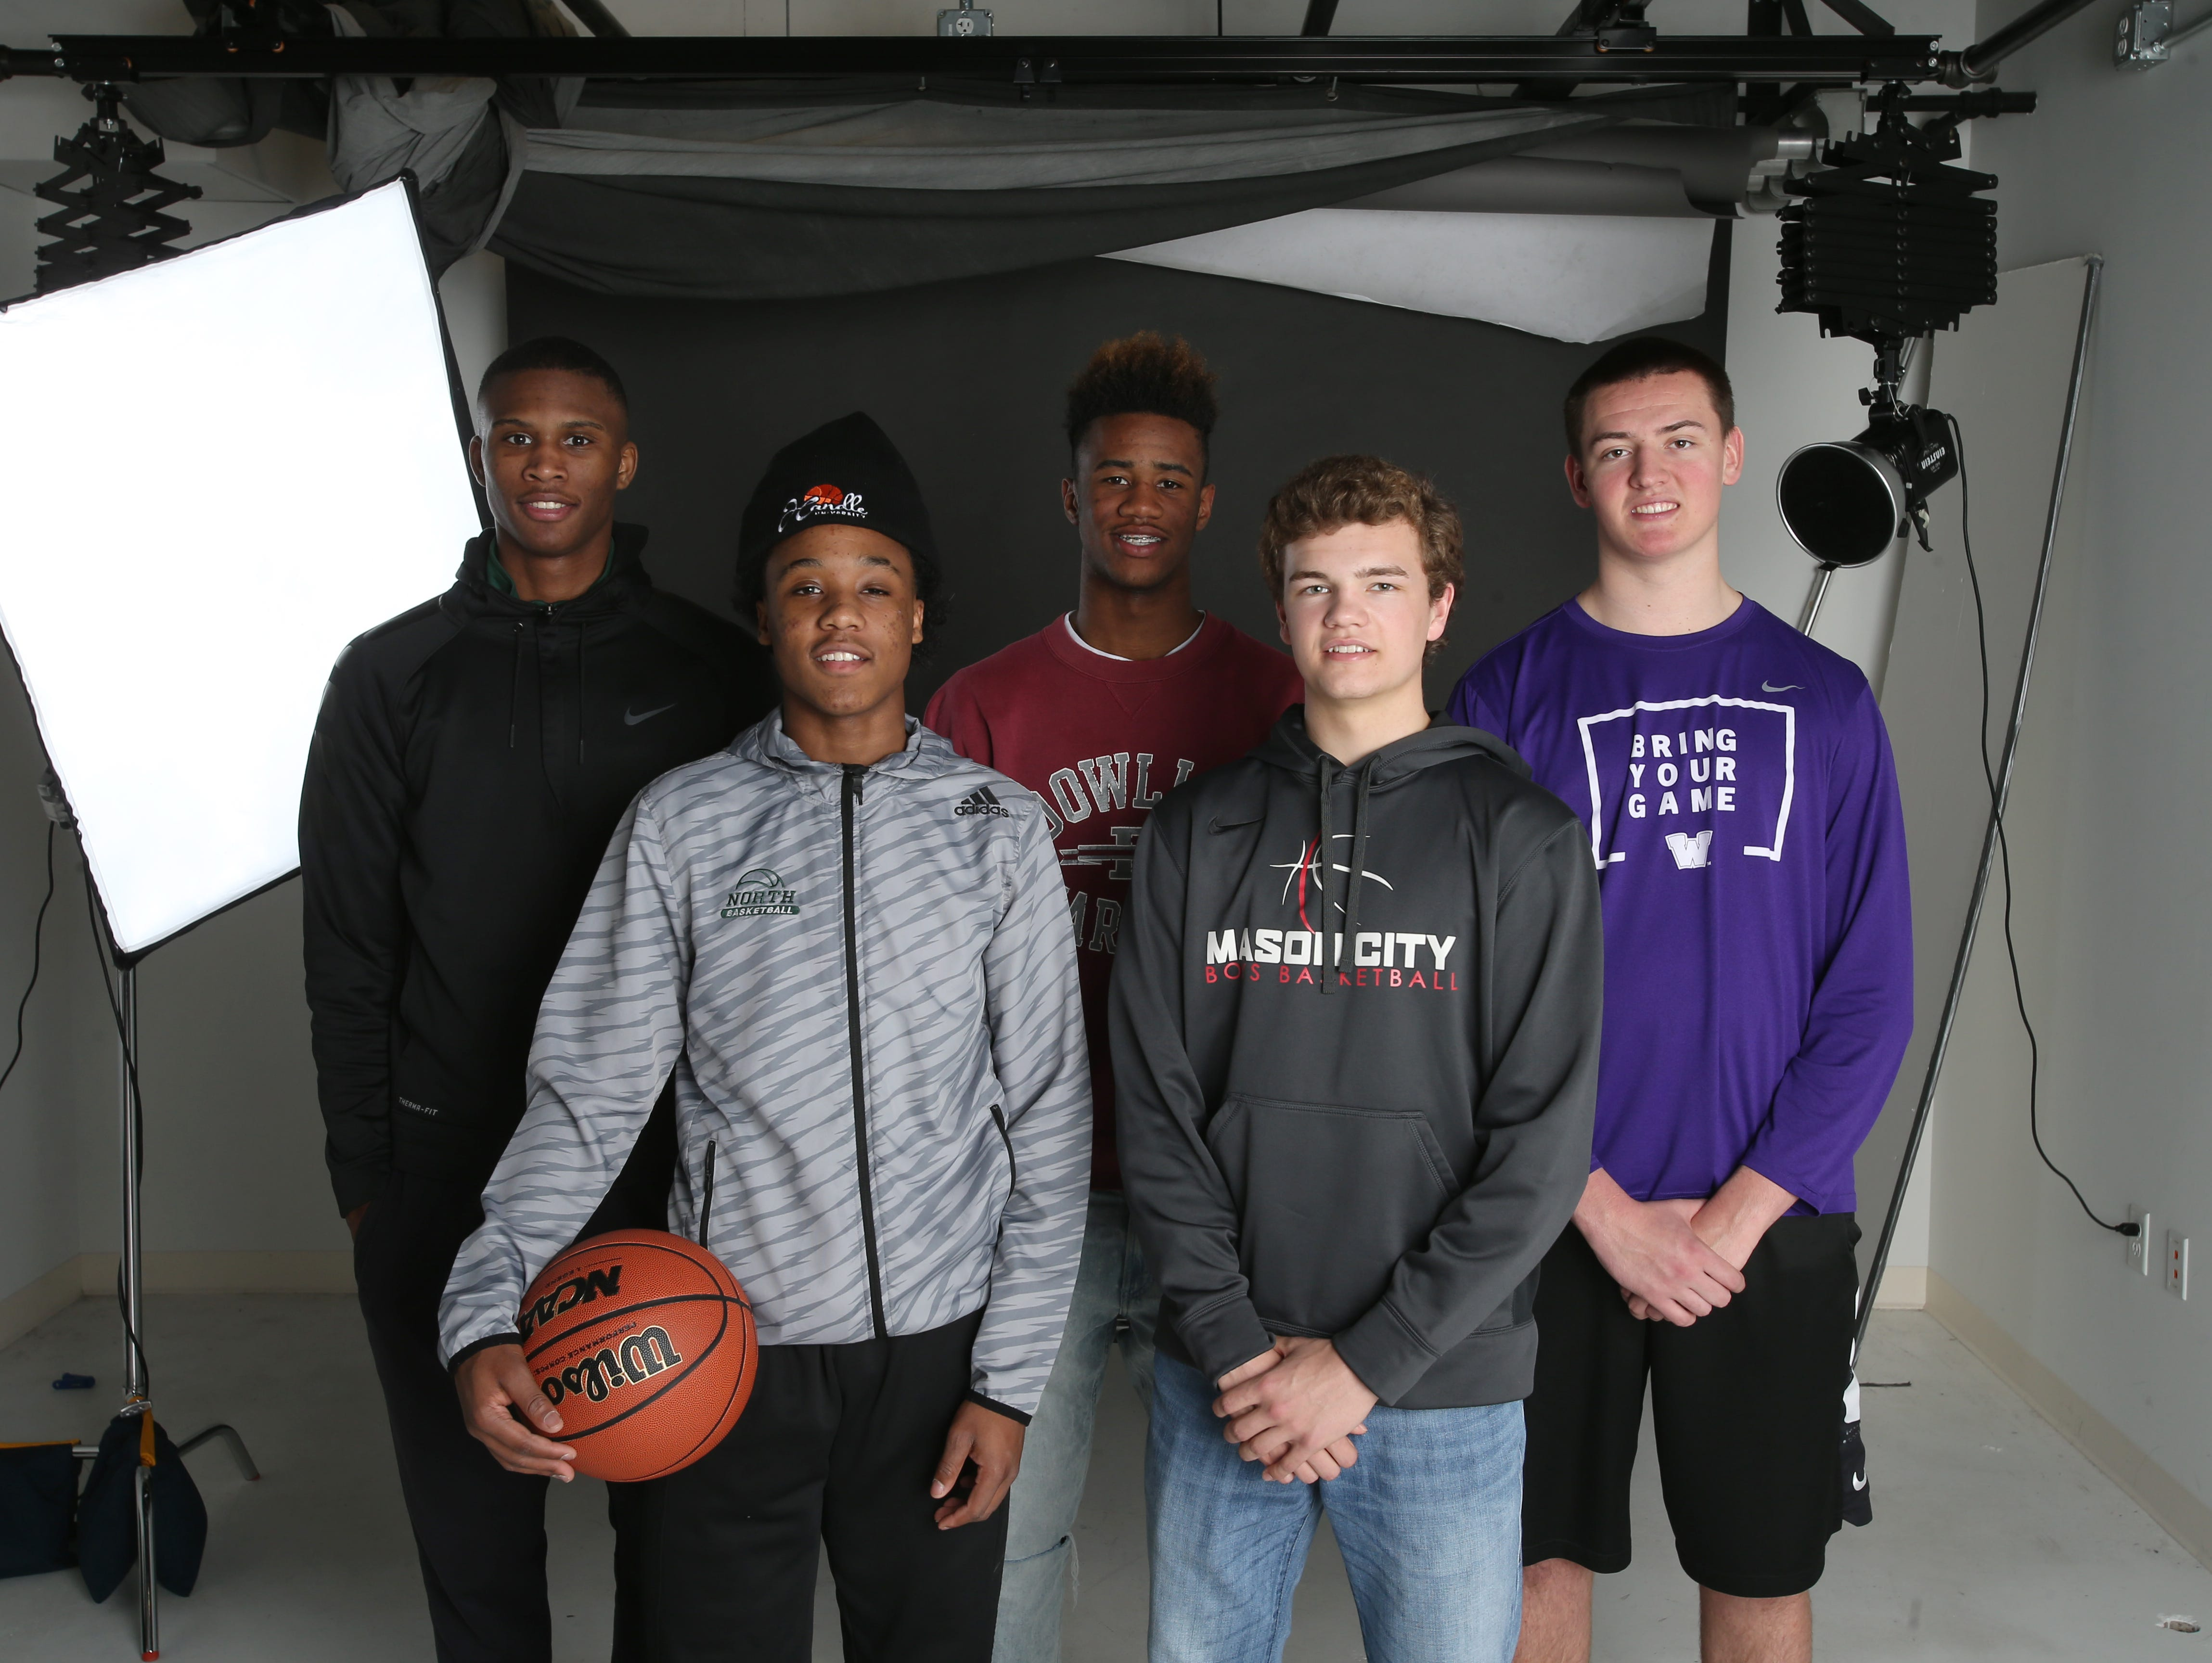 The Des Moines Register's All-CIML Elite boysÕ basketball selections, (front row) Tyreke Locure, North and Kyle Lang, Mason City, (back row) Doug Wilson, Hoover, Sam Ingoli, Dowling Catholic and Jacob Rau, Waukee photographed in the studio on Sunday, Feb. 26, 2017, in Des Moines.